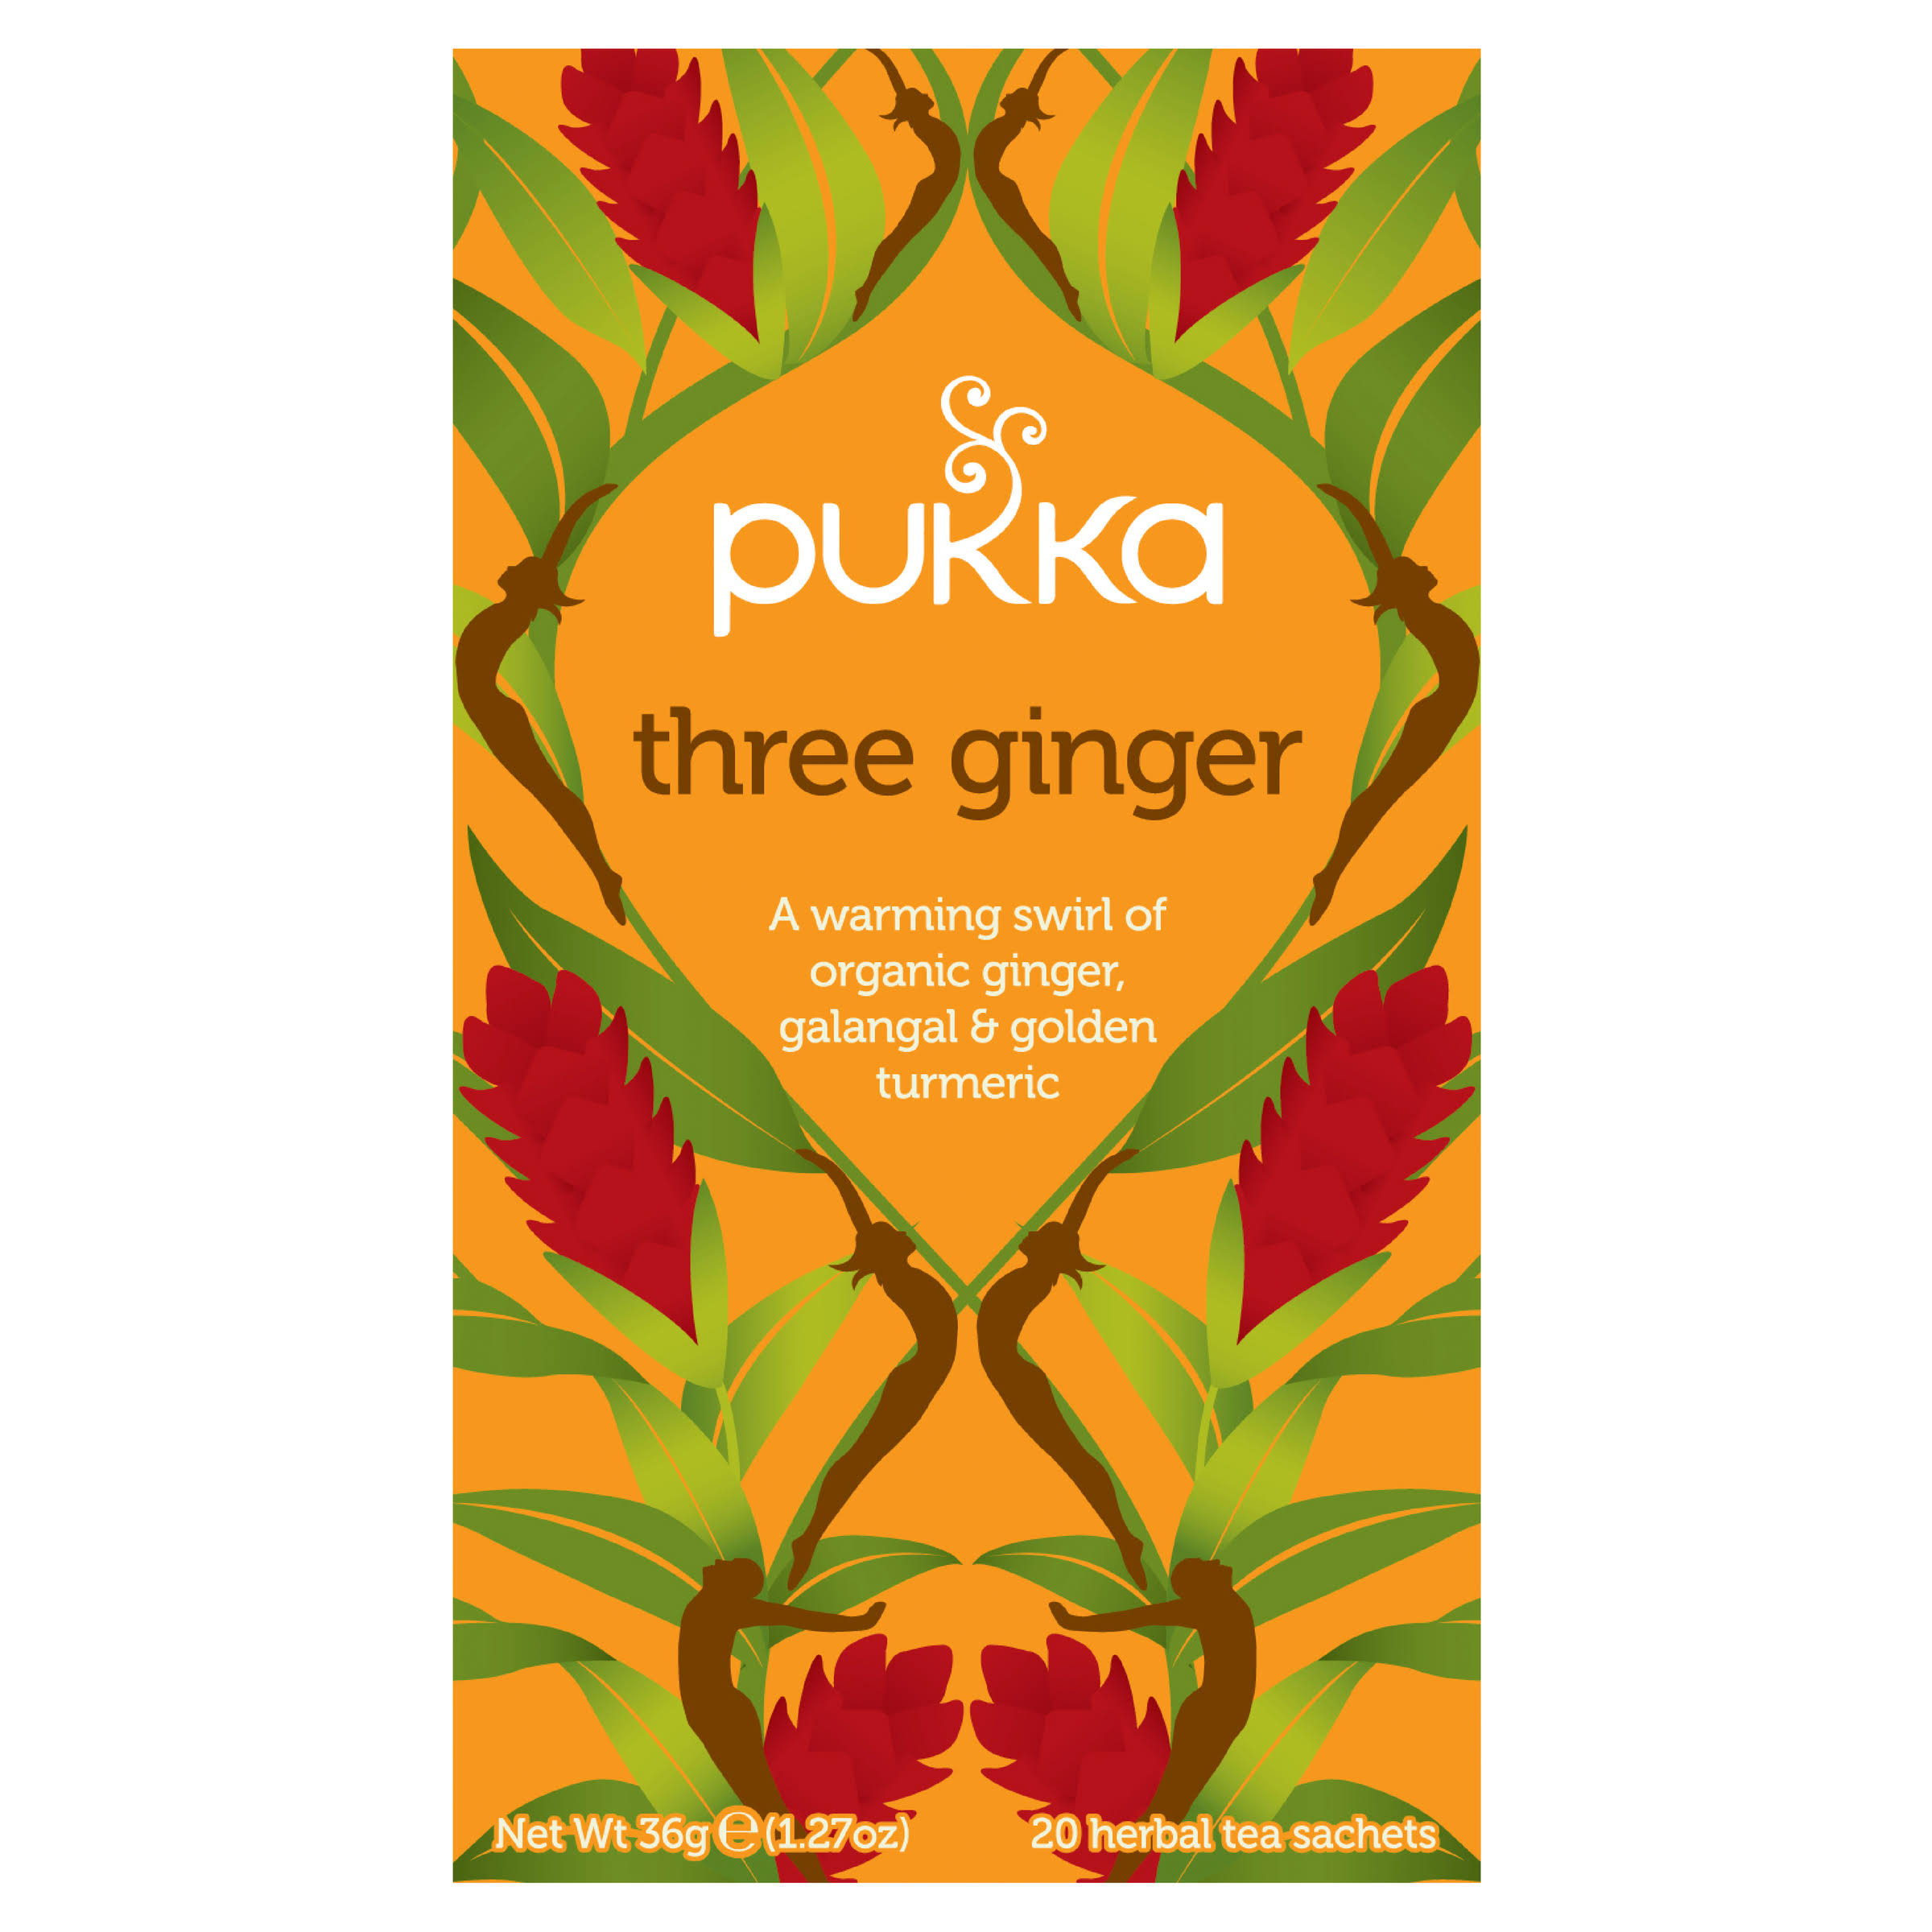 Pukka Organic Herbal Tea - Three Ginger, 36g, 20ct